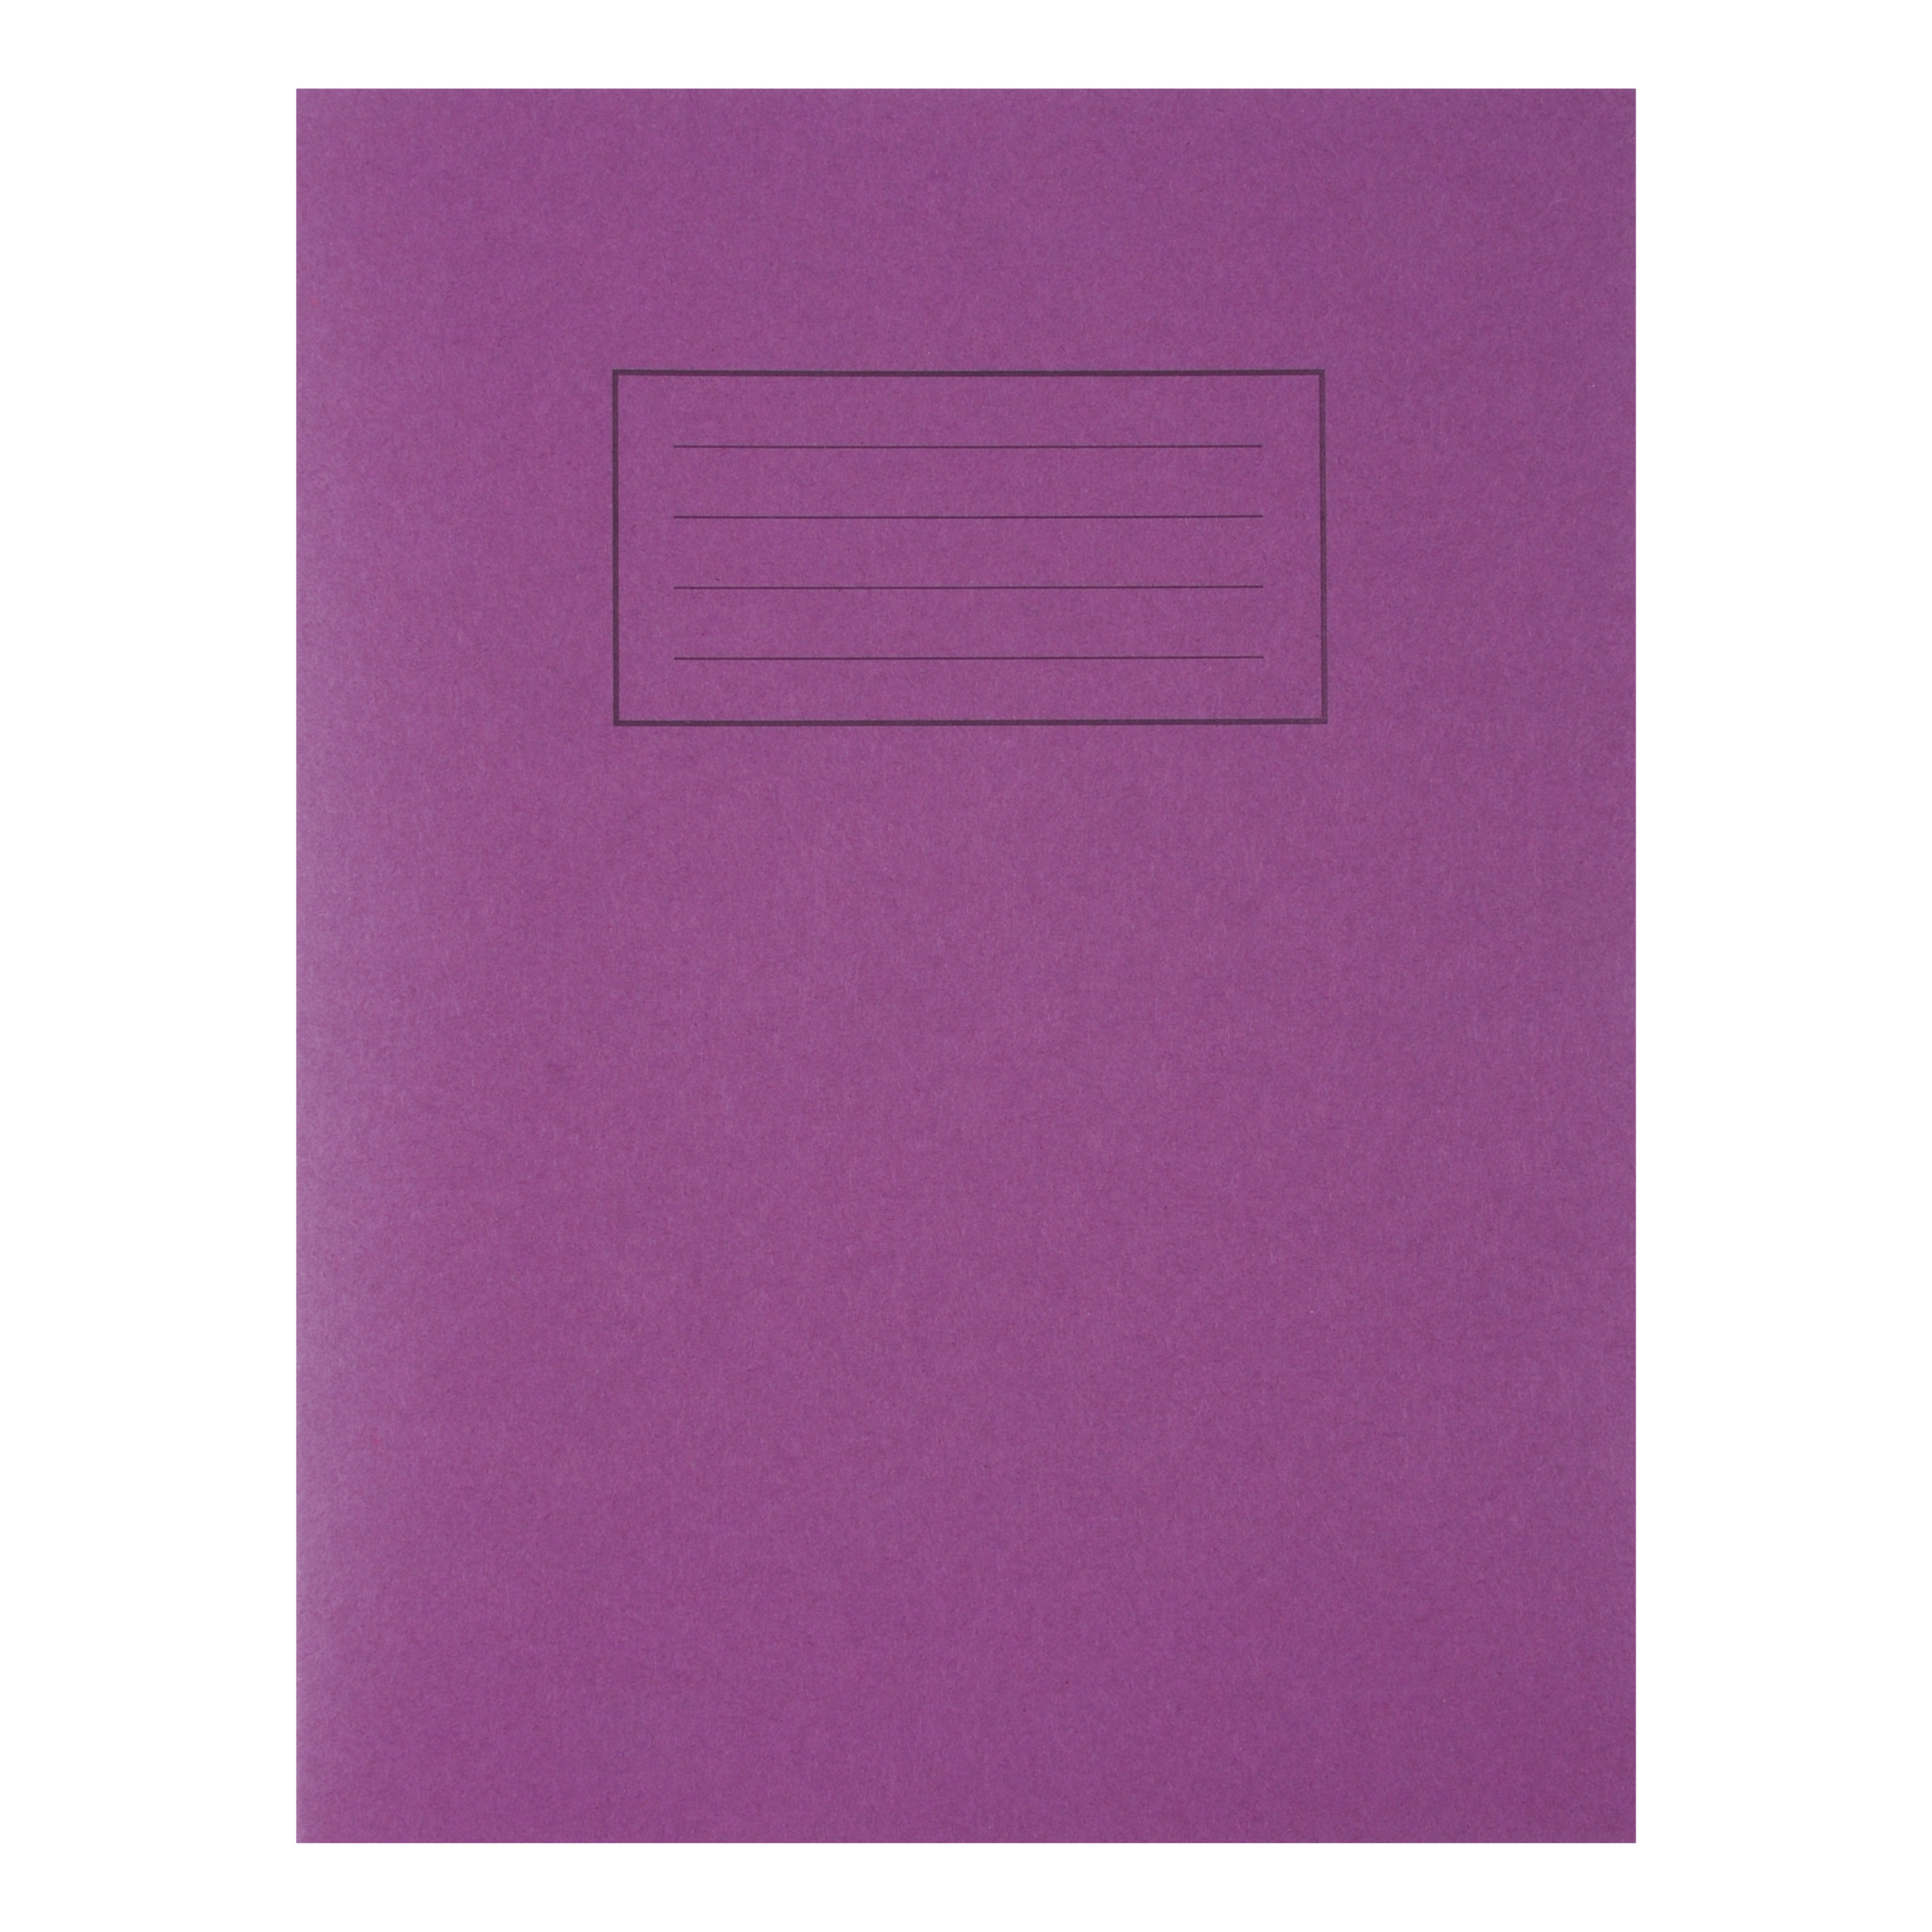 Exercise Books Silvine Exercise Book Ruled and Margin 80 Pages 75gsm 229x178mm Purple Ref EX100 Pack 10